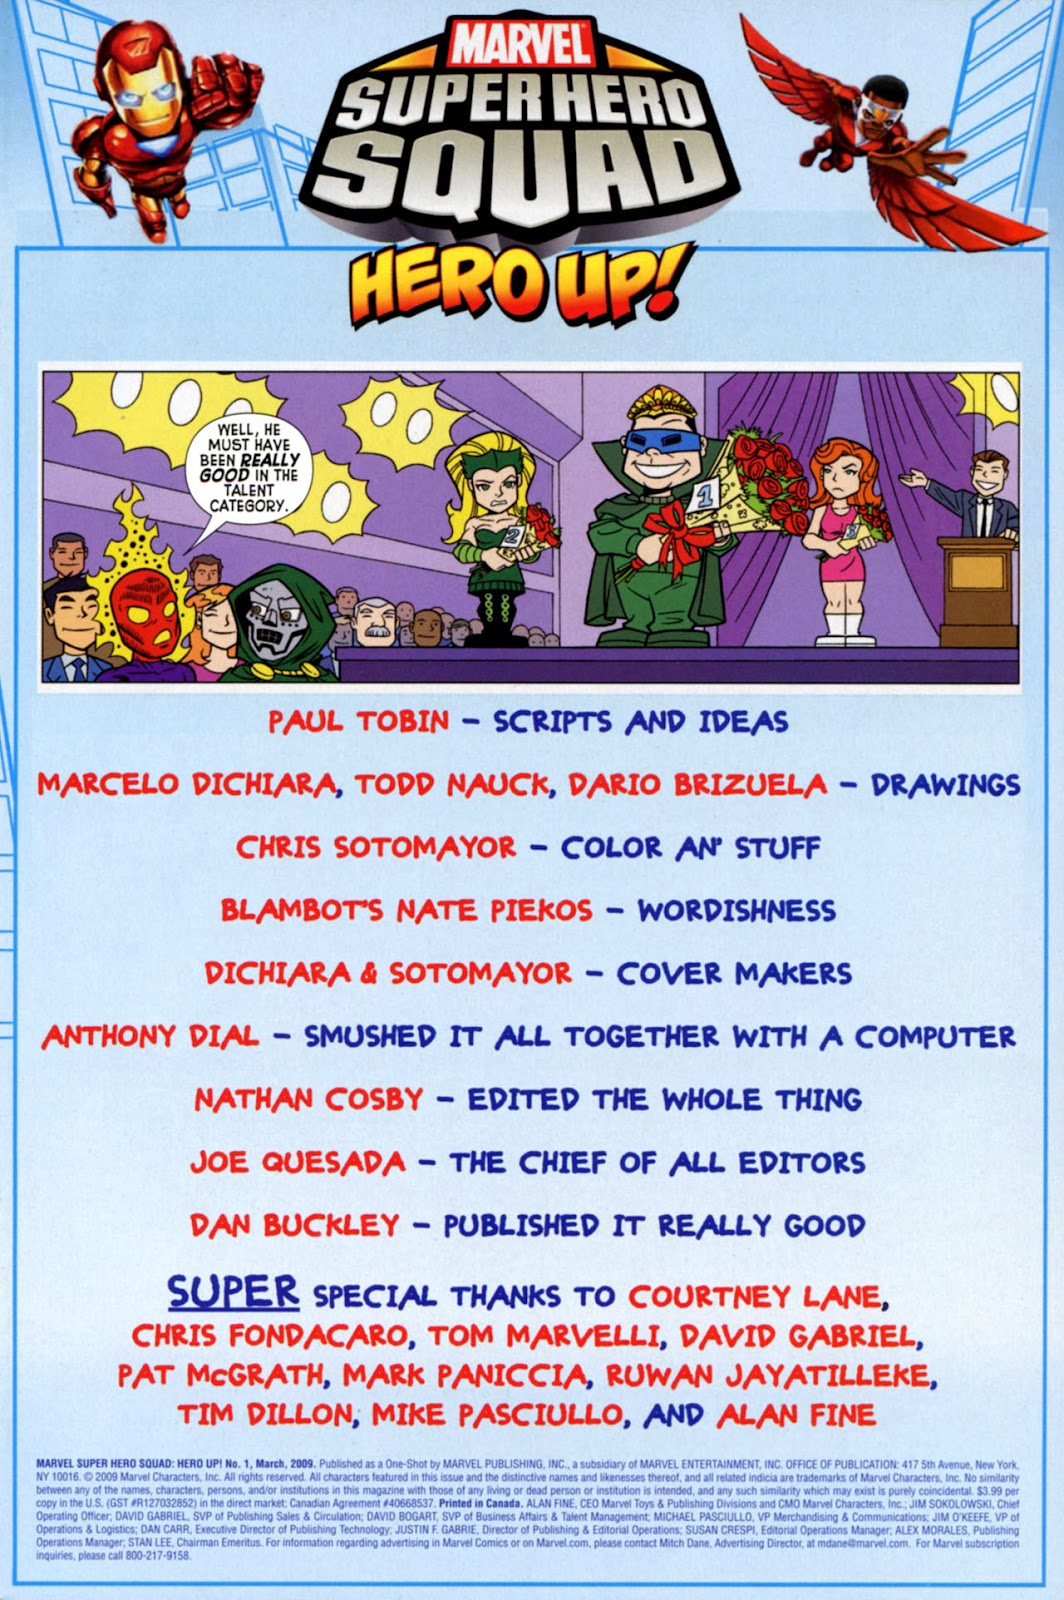 Read online Marvel Super Hero Squad: Hero Up! comic -  Issue # Full - 3